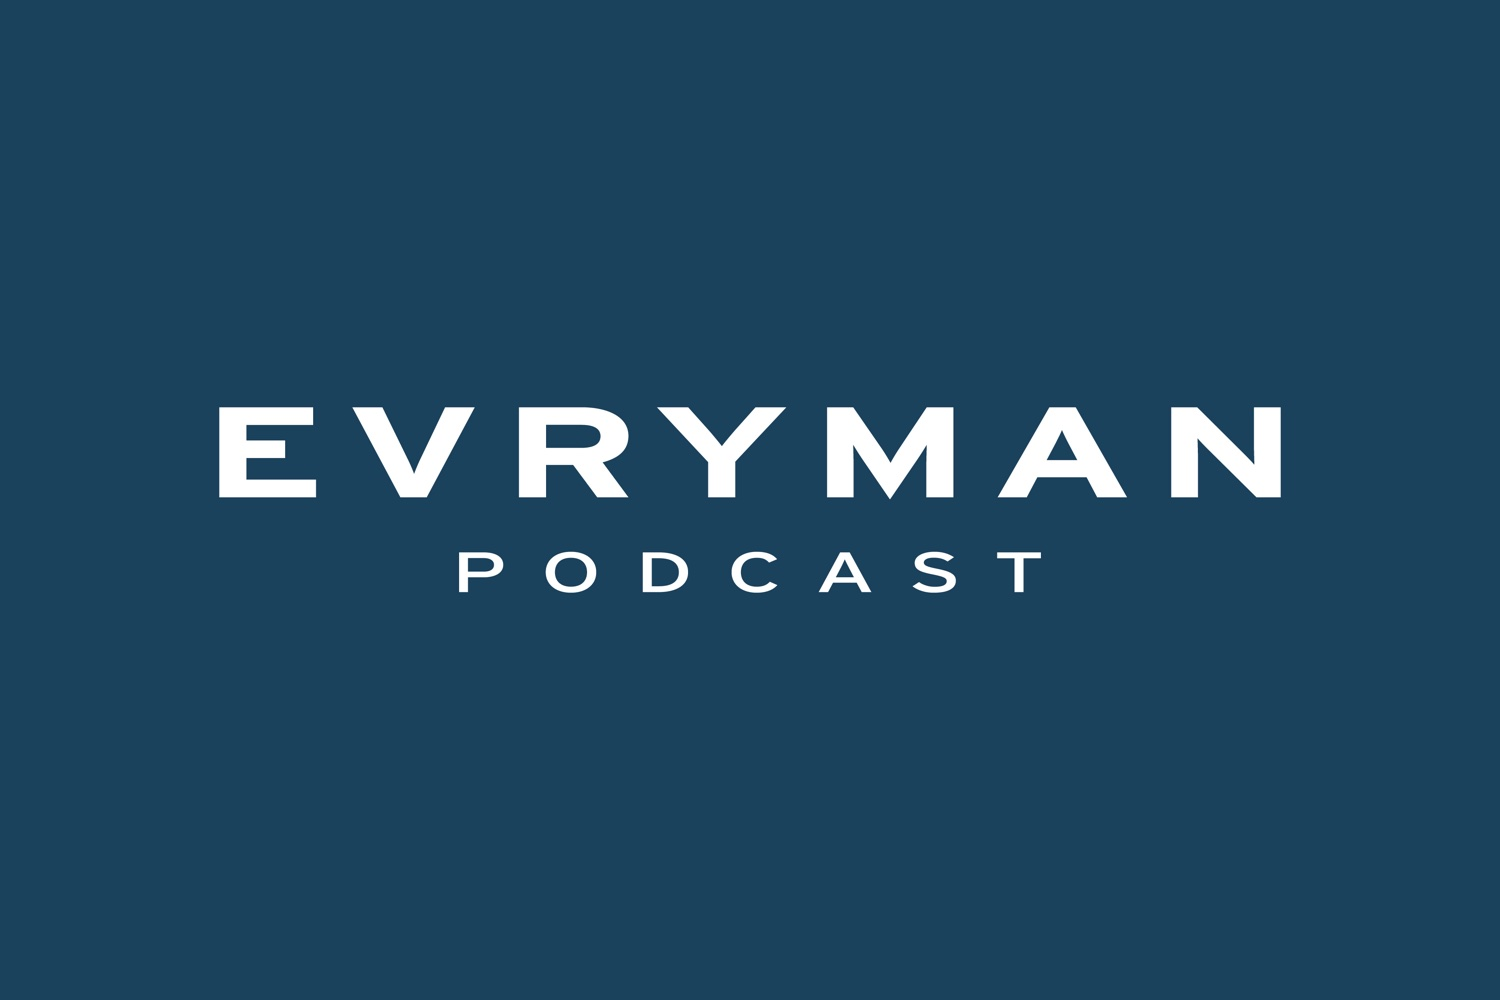 THE EVRYMAN PODCAST - EP61: Your Arousal Is Not a Problem